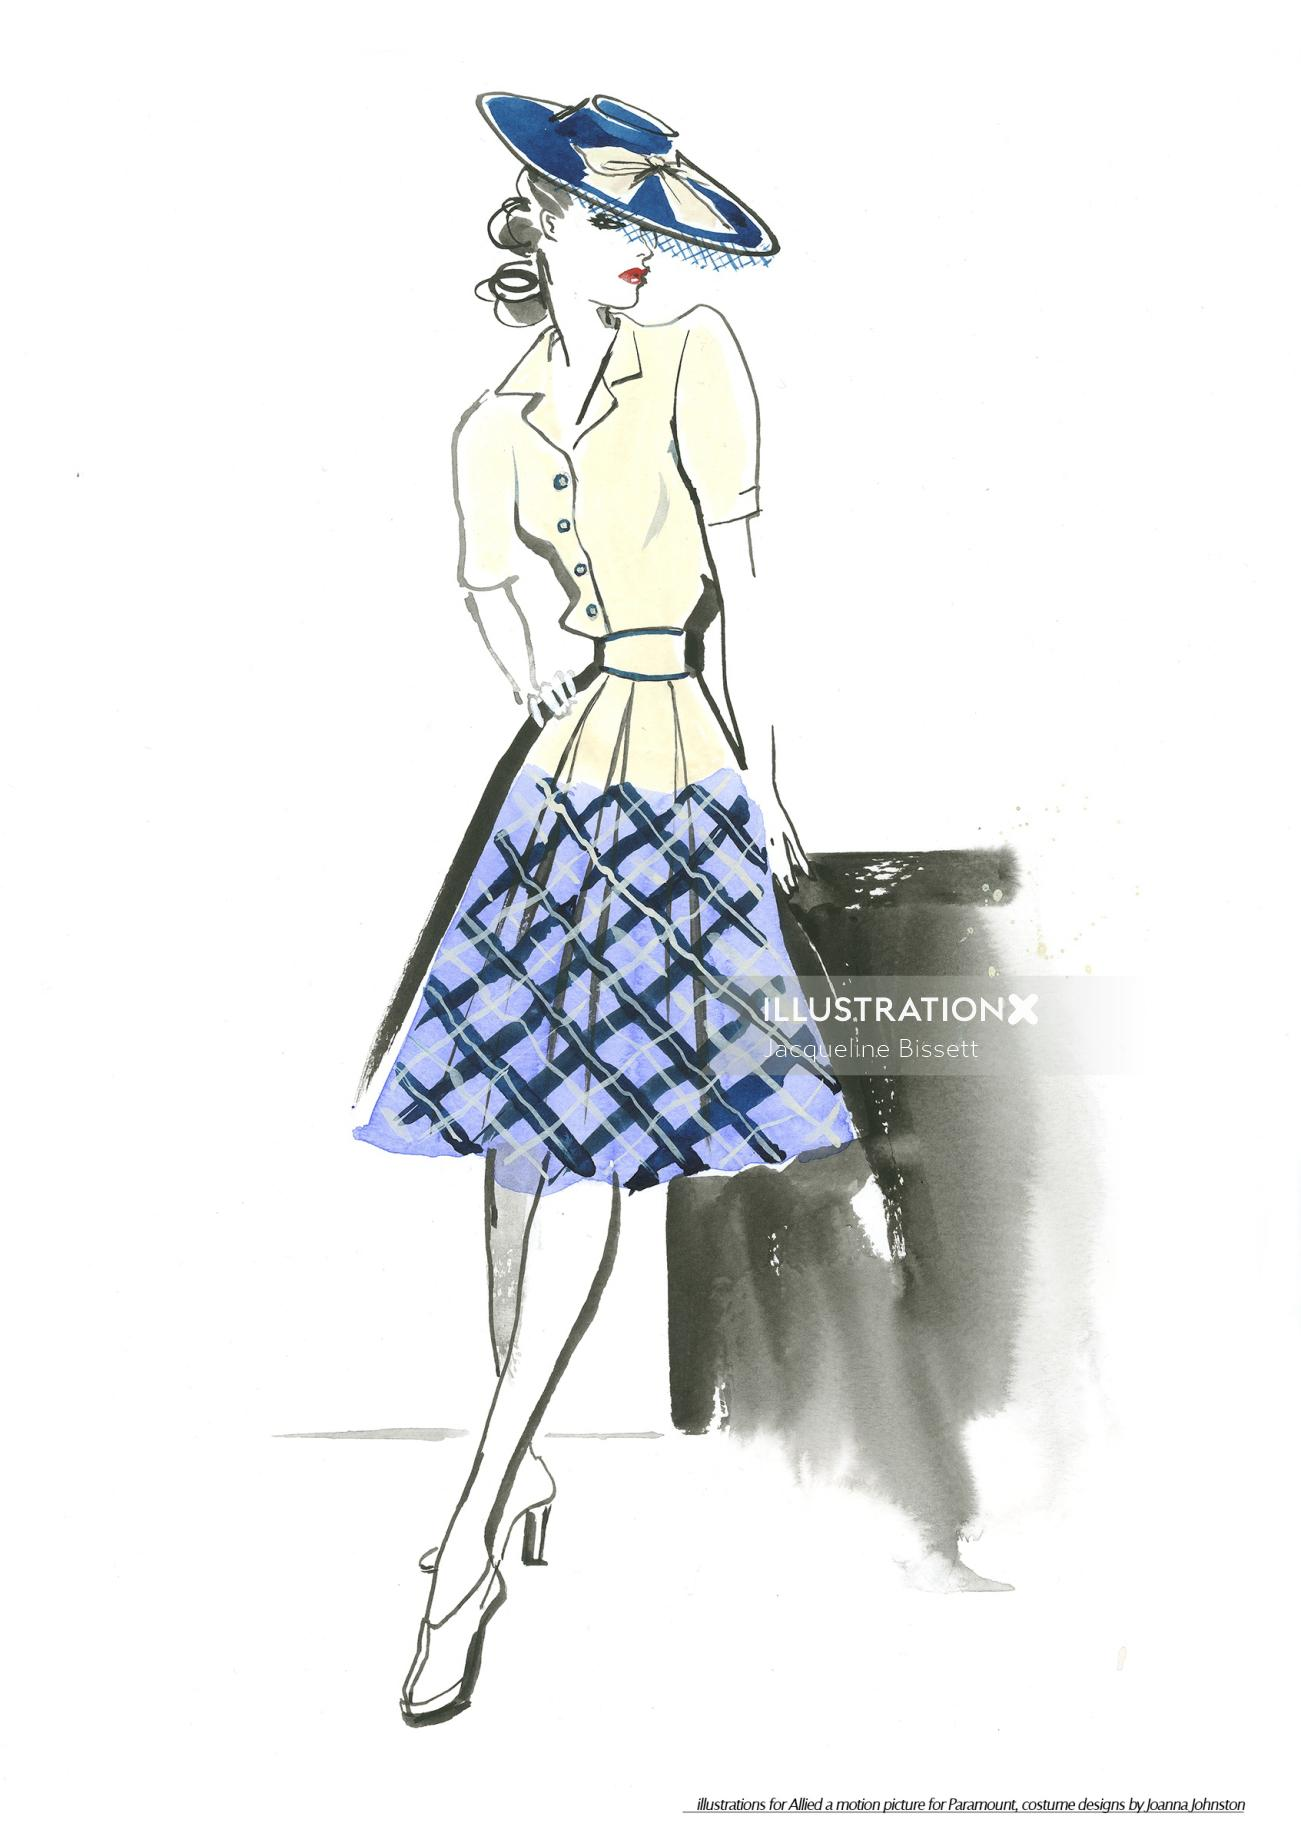 Woman fashion illustration by Jacqueline Bissett